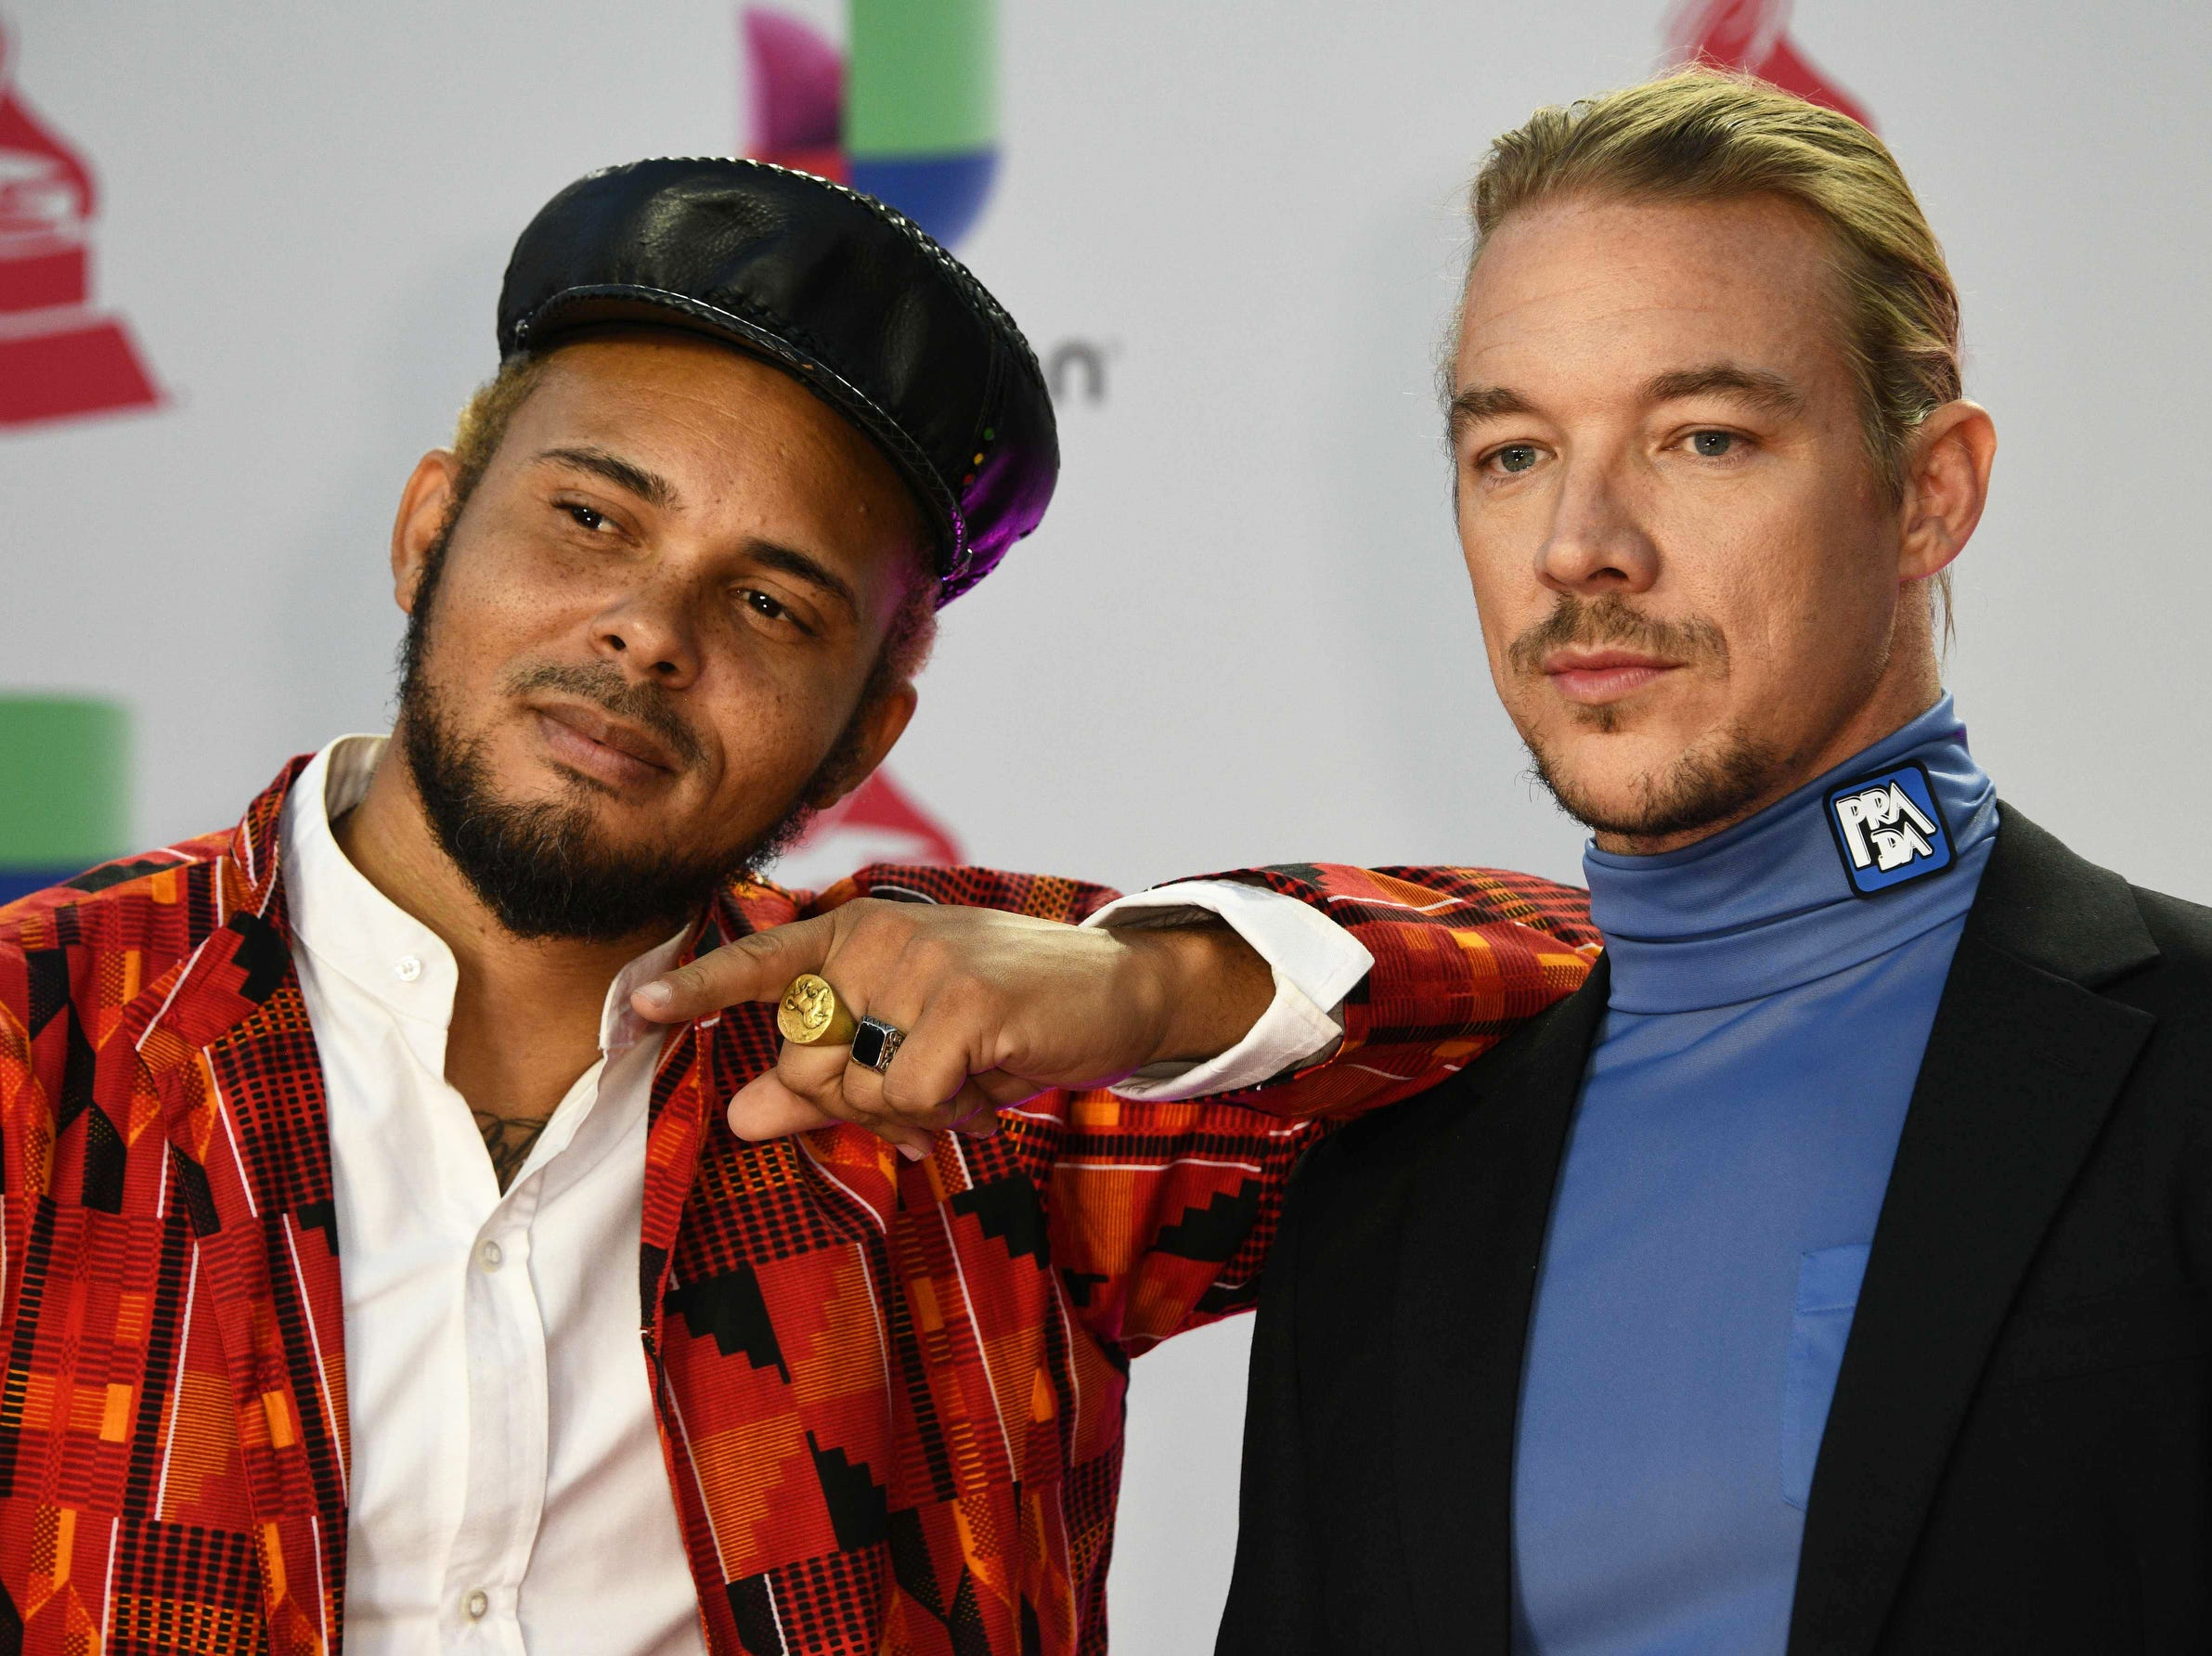 Walshy Fire, left, and Diplo of Major Lazer